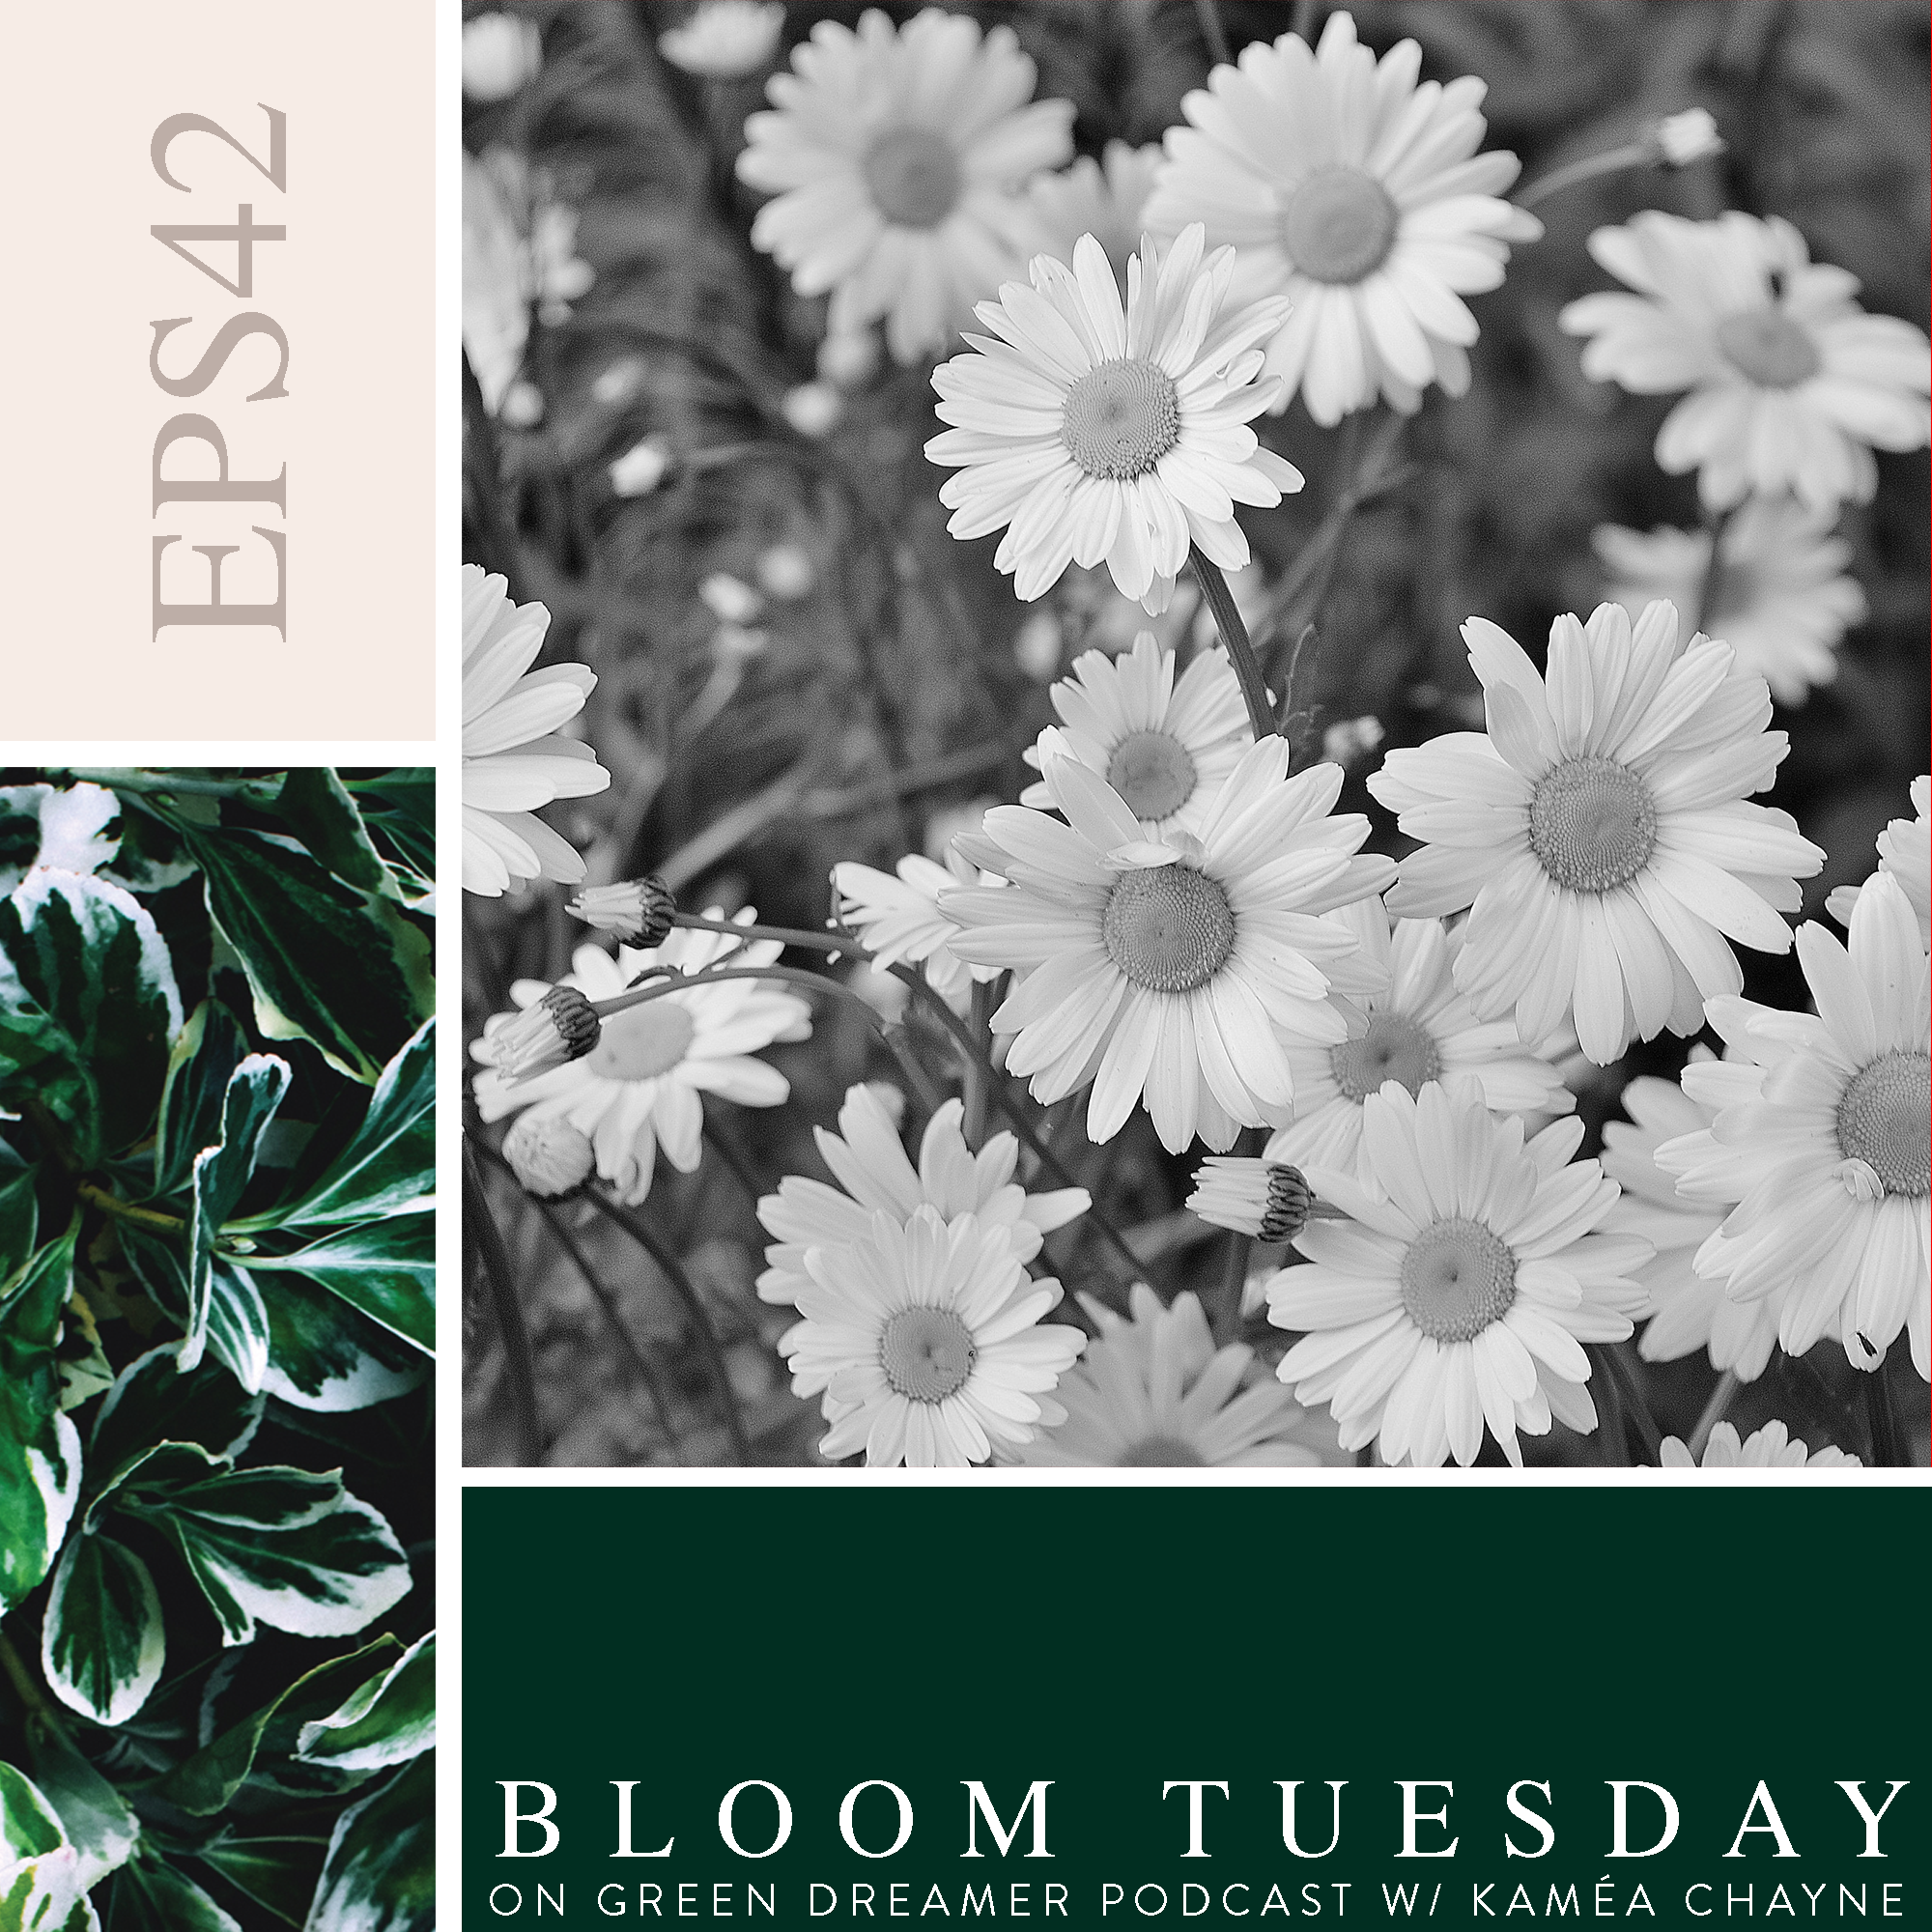 42) BLOOM TUESDAY